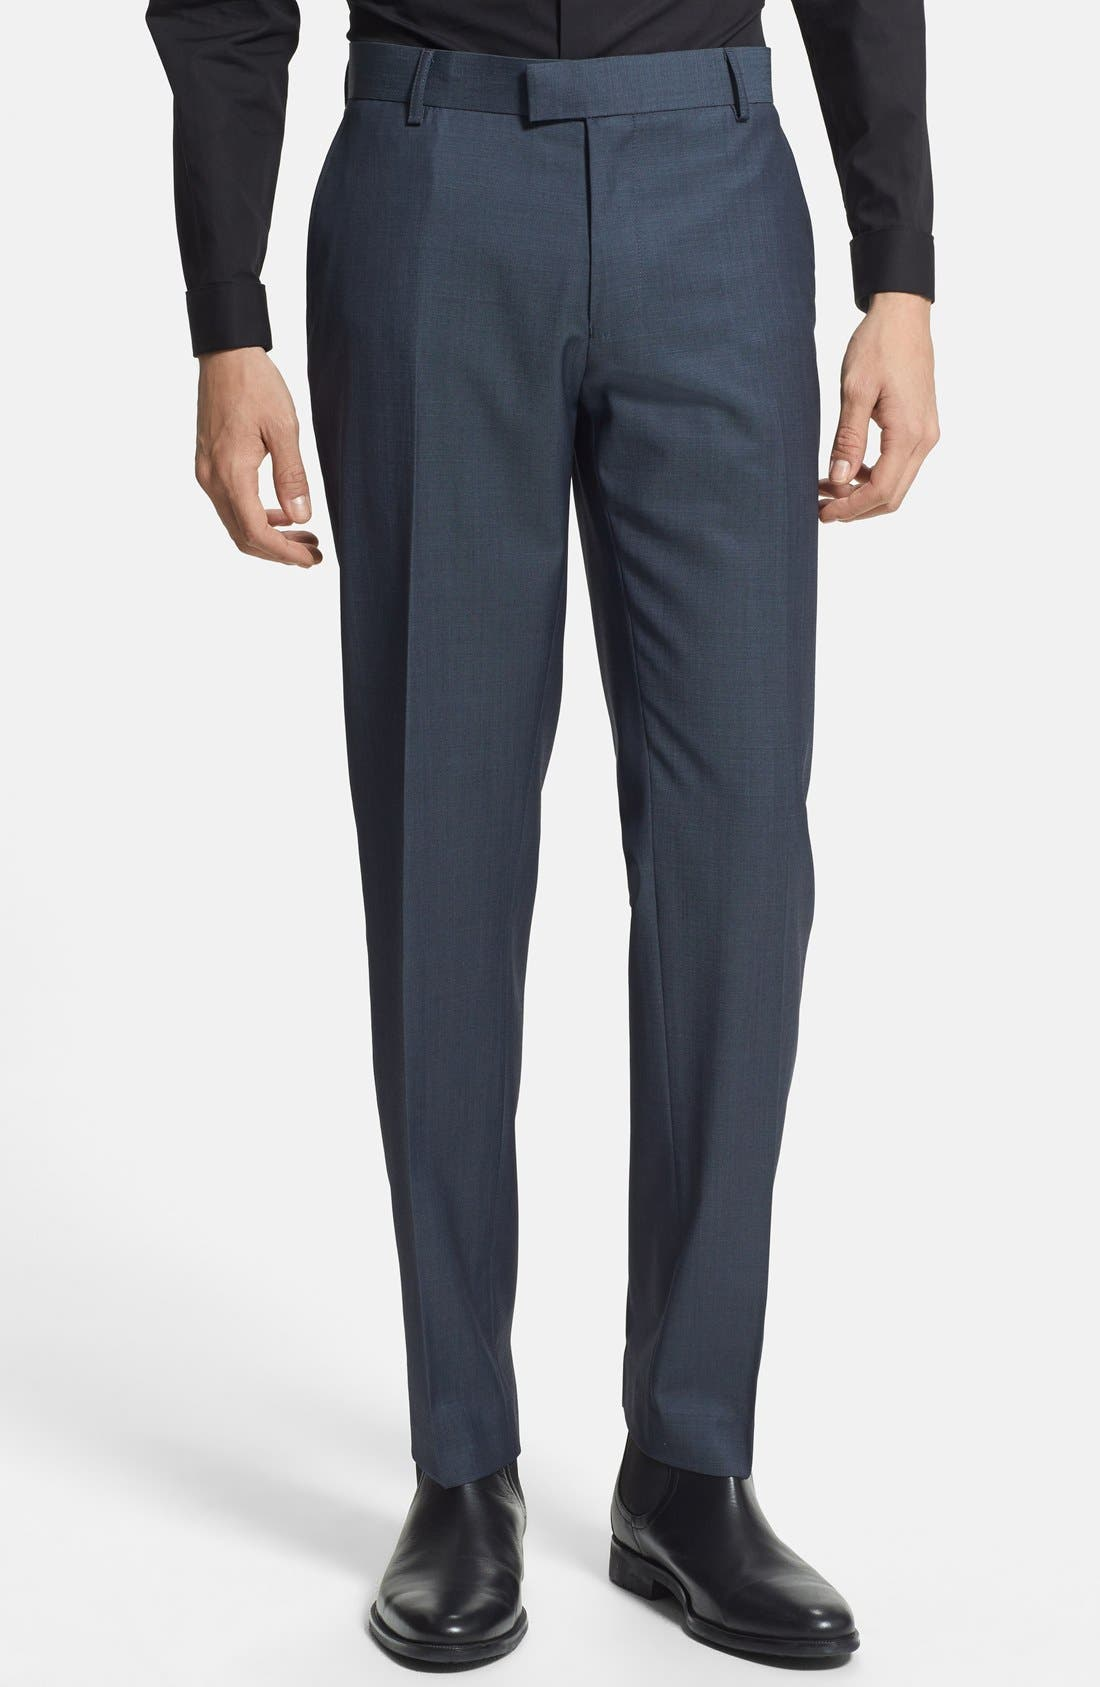 Alternate Image 1 Selected - Topman Skinny Fit Navy Suit Trousers